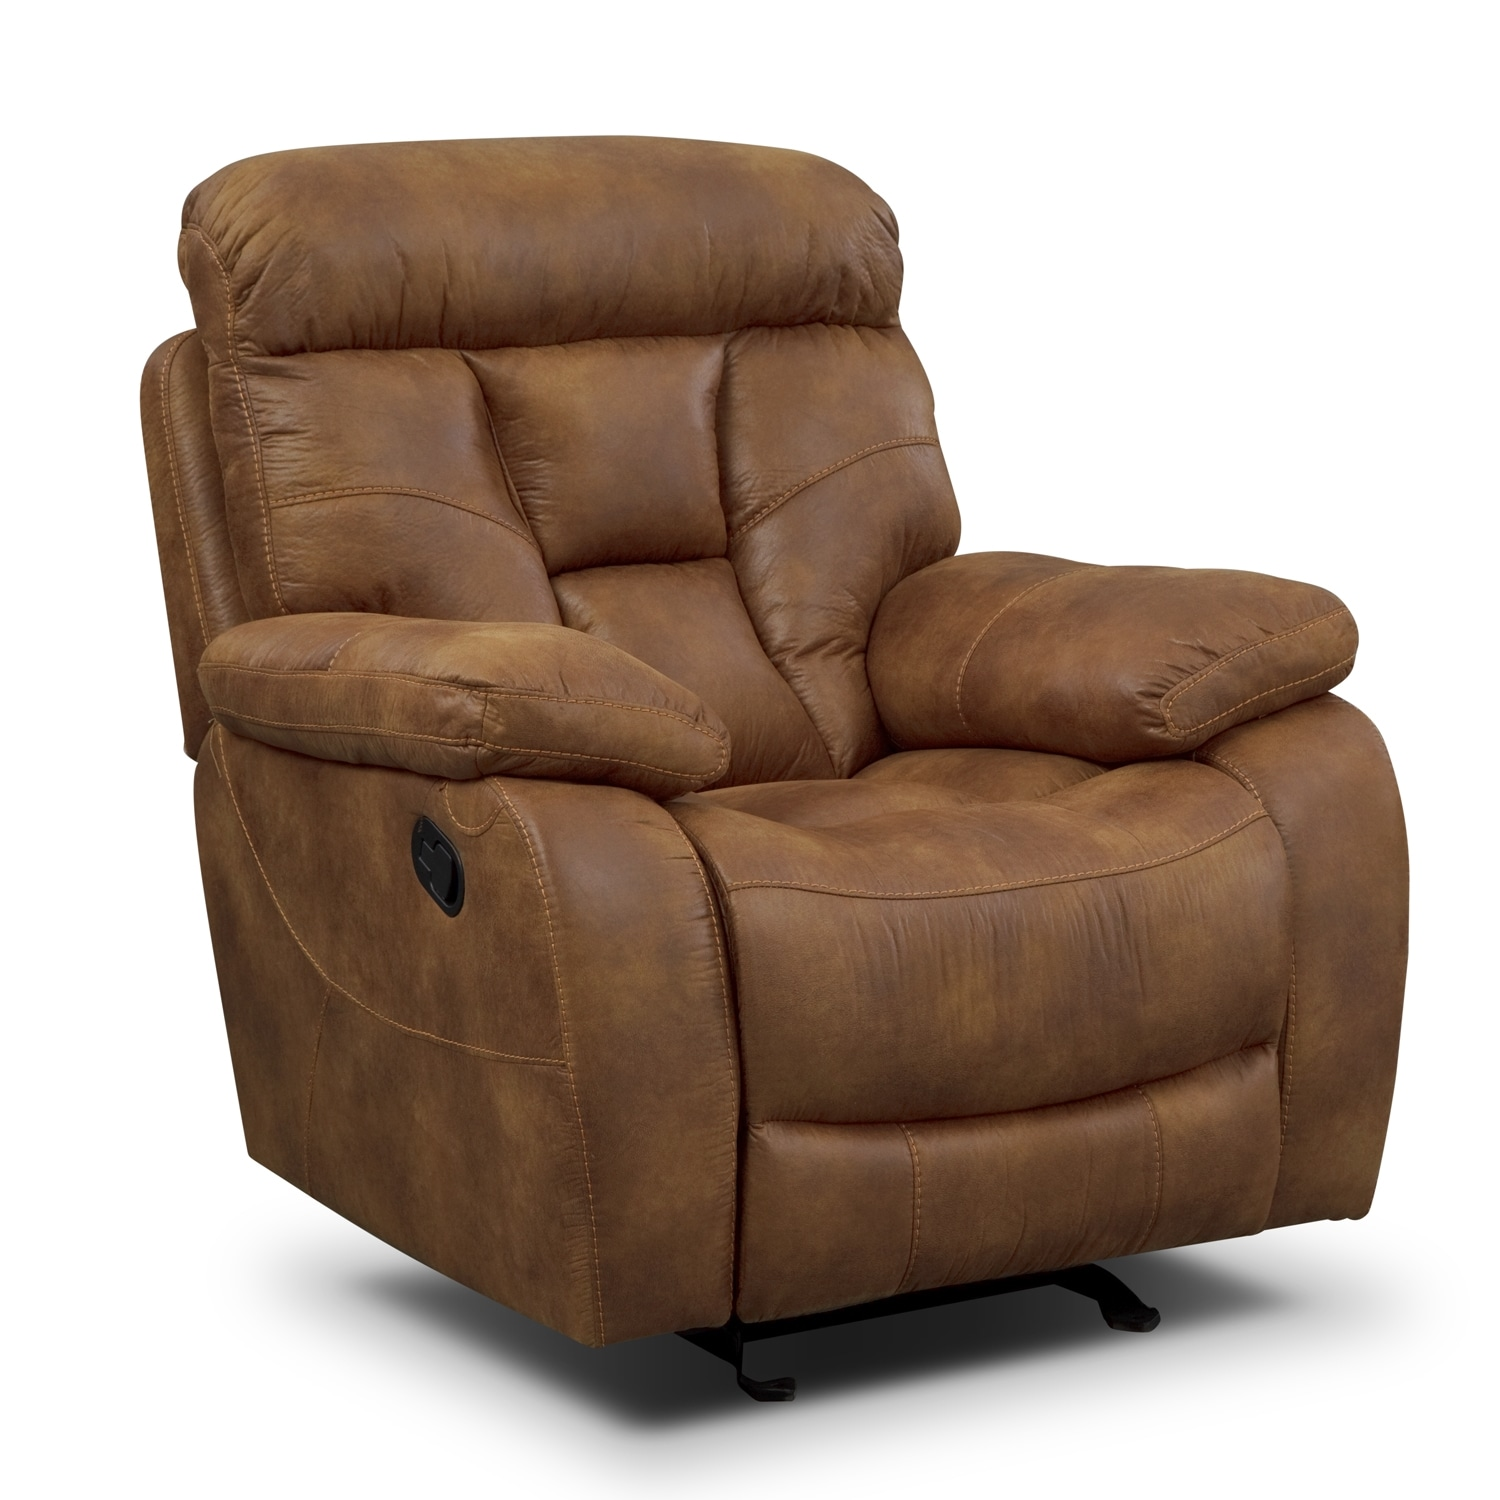 Living Room Furniture - Dakota II Glider Recliner